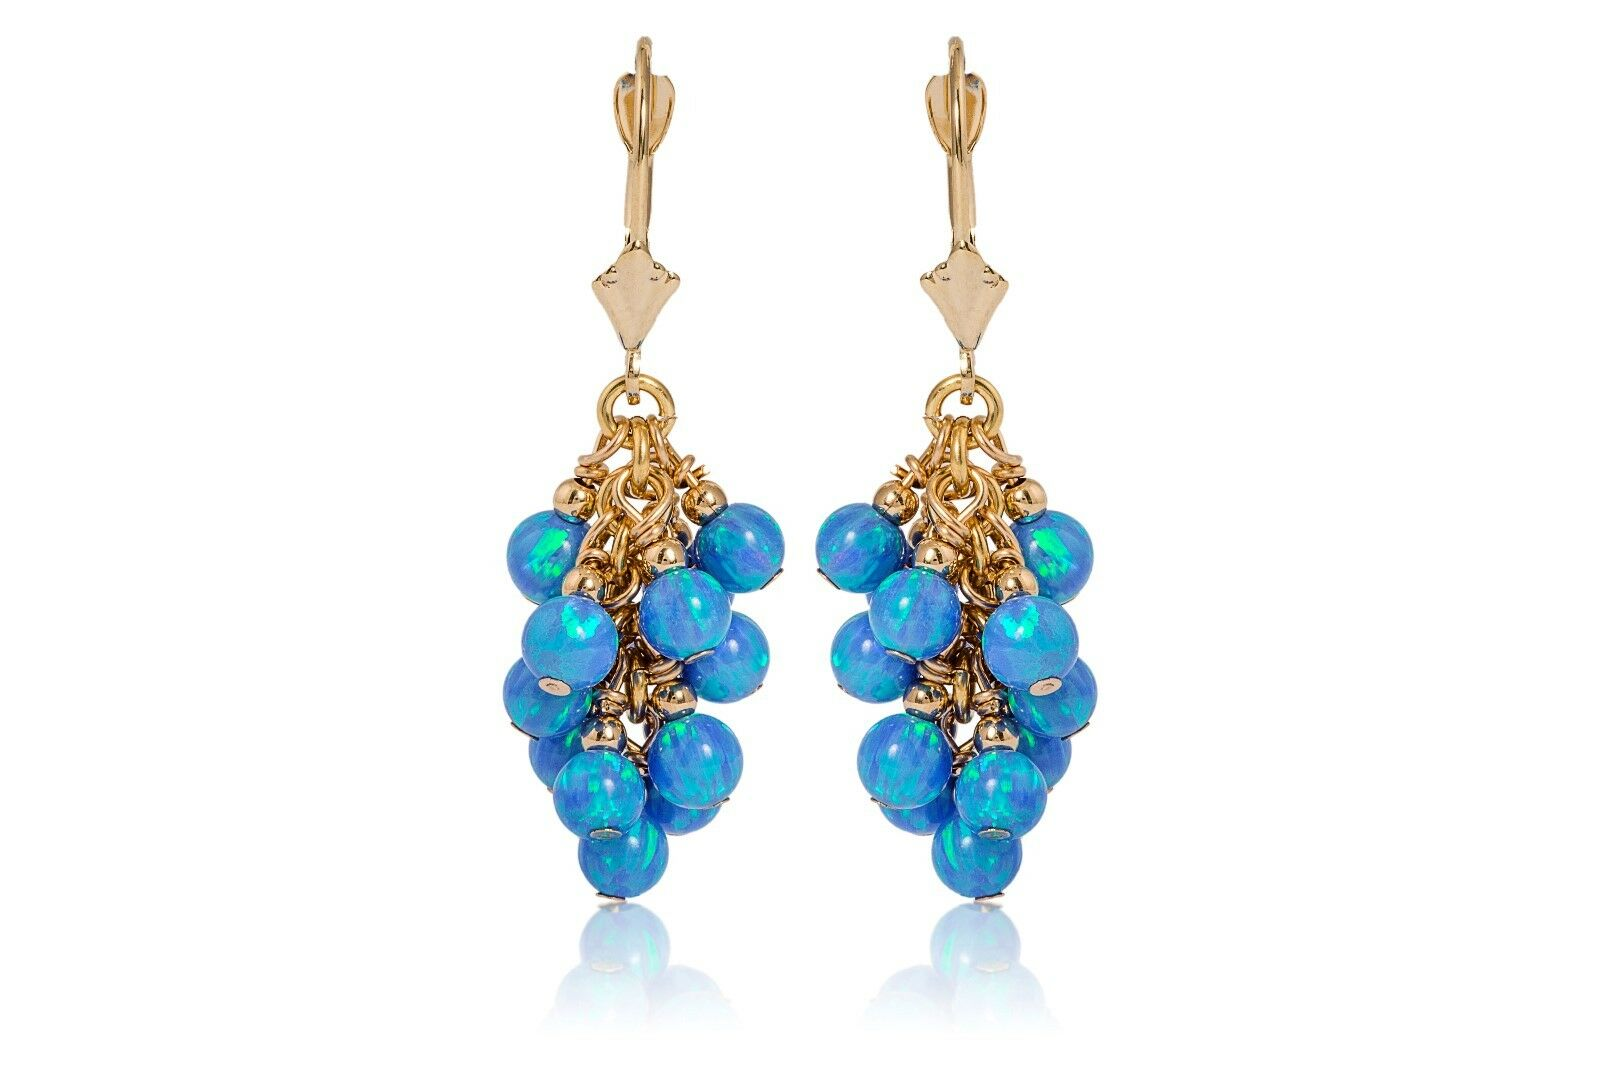 8b26e908f Details about 14K Solid Yellow Gold Grape Blue Fire Opal Drop Lever Back  Dangle Earrings